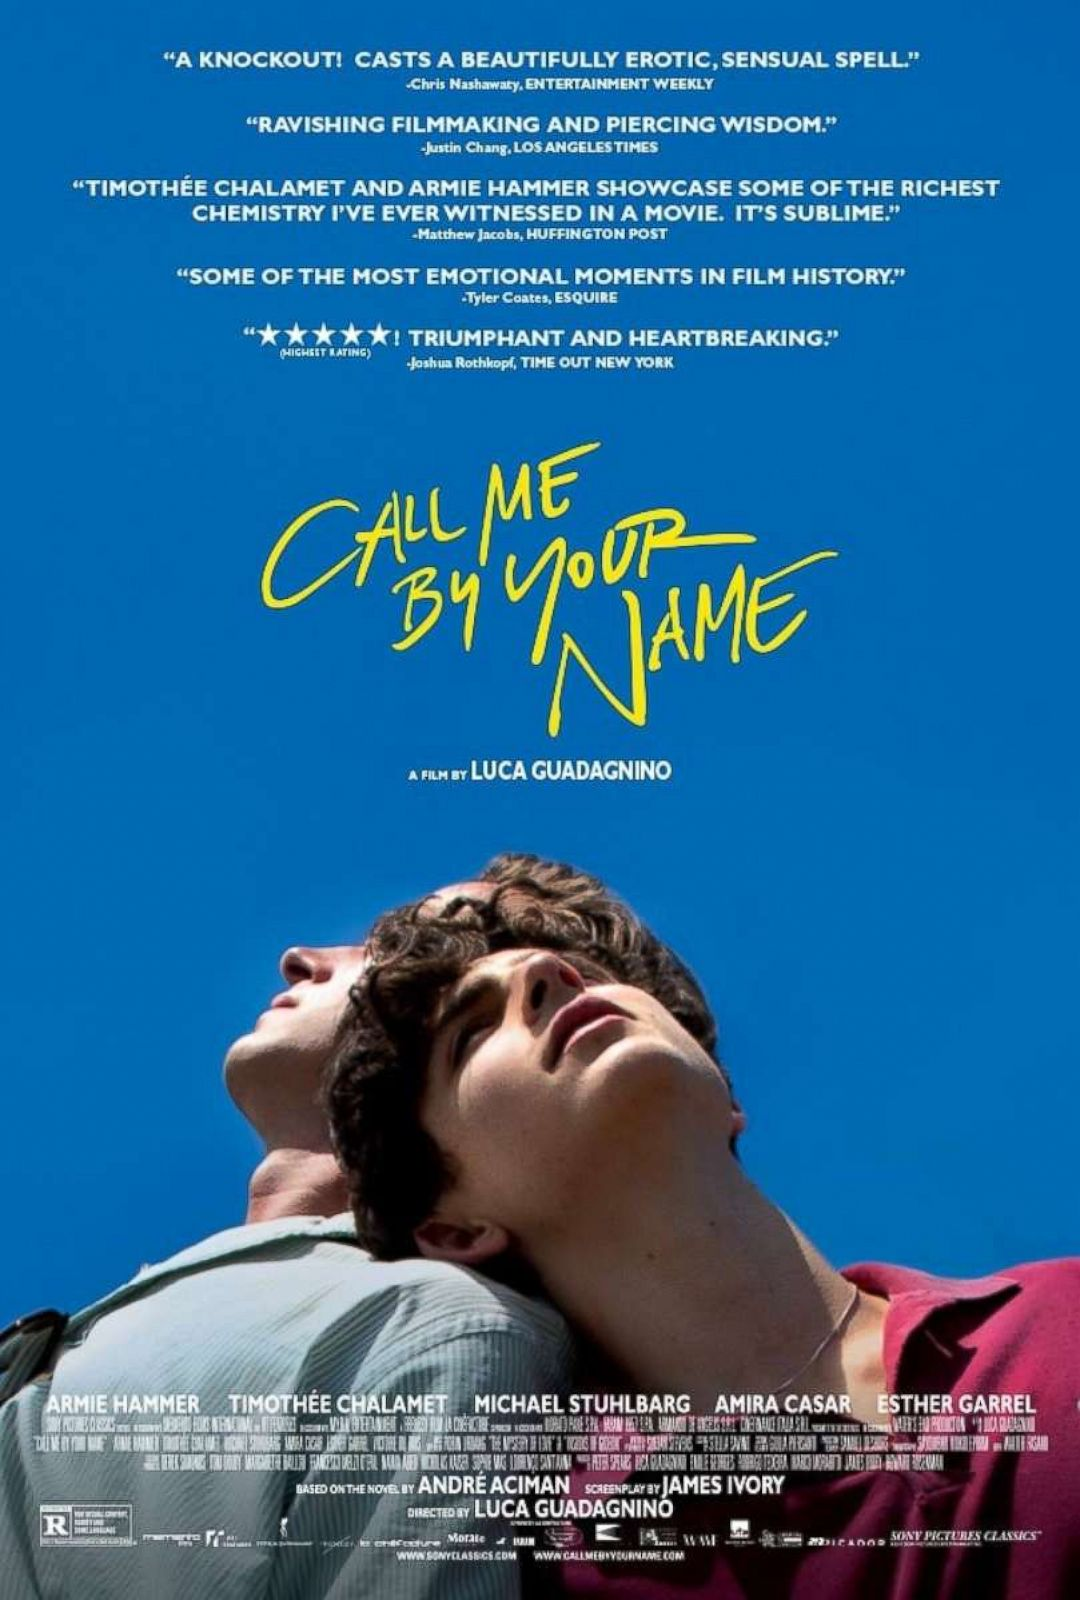 Call Me by Your Name   (2017) dir. Luca Guadagnino Rated: R image:©2017  Sony Pictures Classics